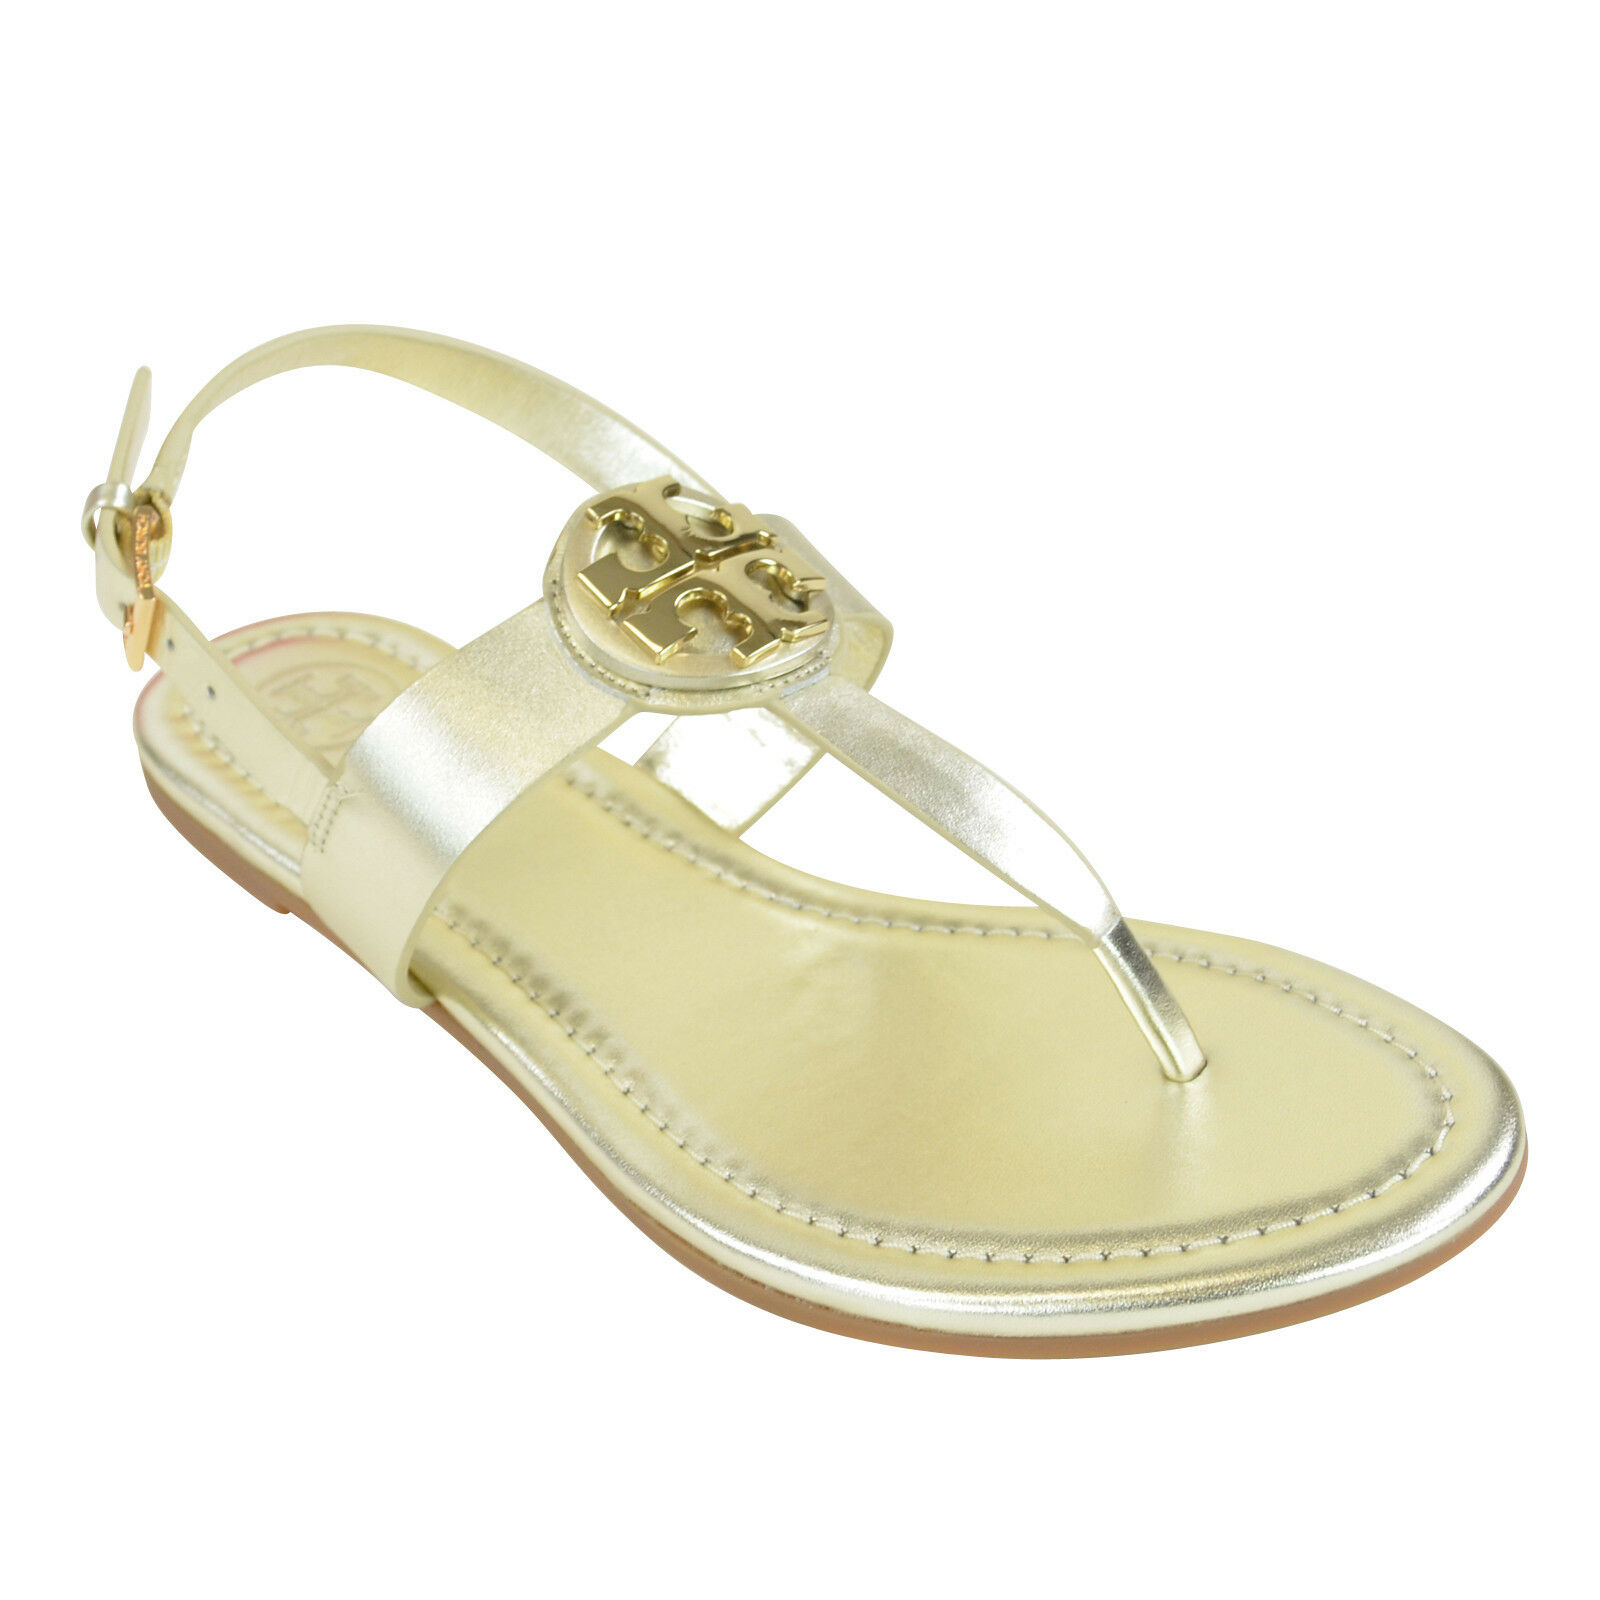 ceb3e7a5a00 Tory Burch Bryce Flate Thong Sandal  Vegan Leather in Spark Gold 9 ...